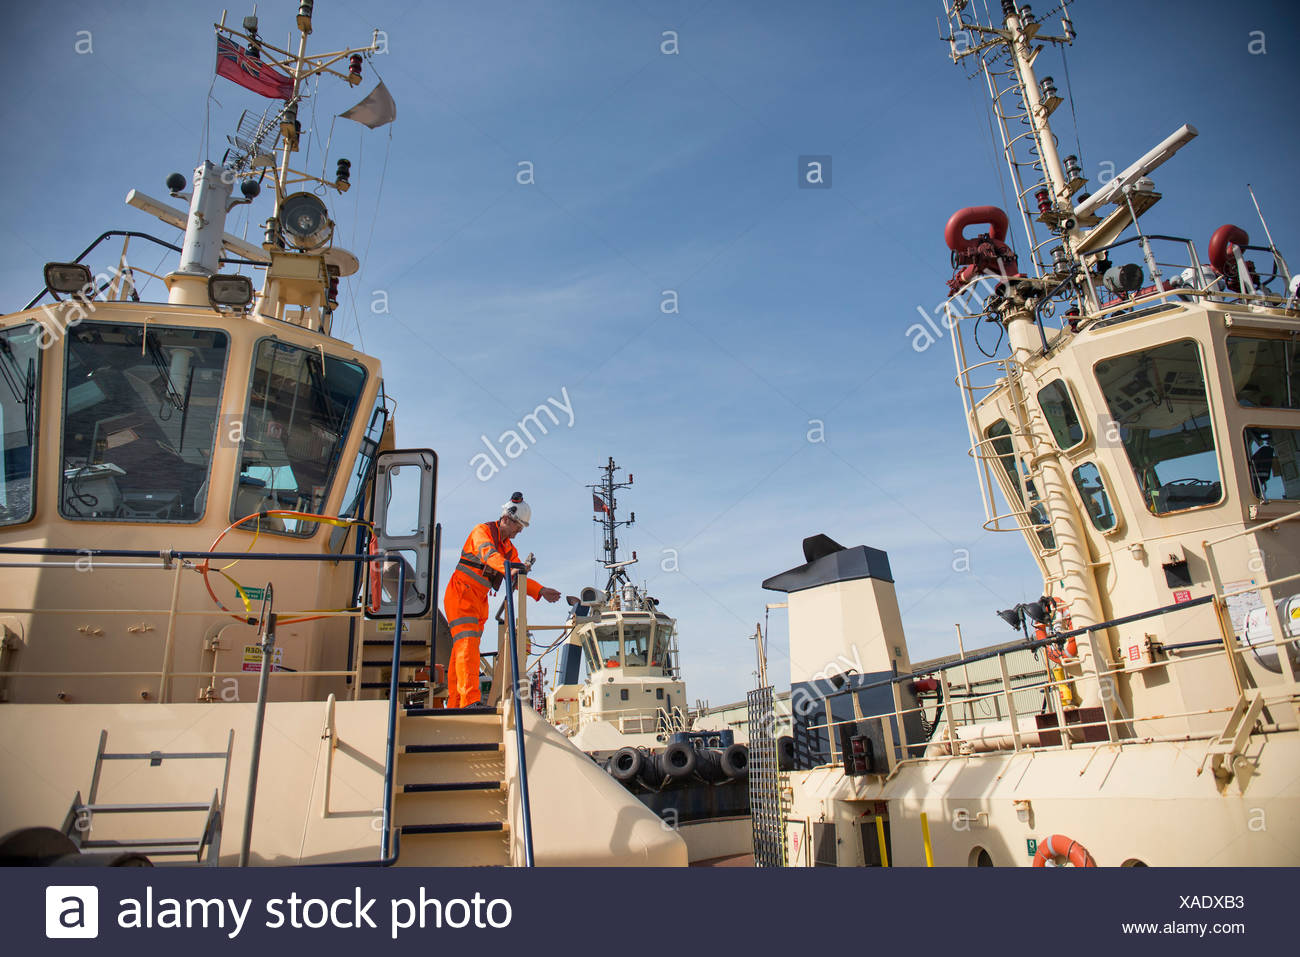 Worker standing on deck of tow boat - Stock Image